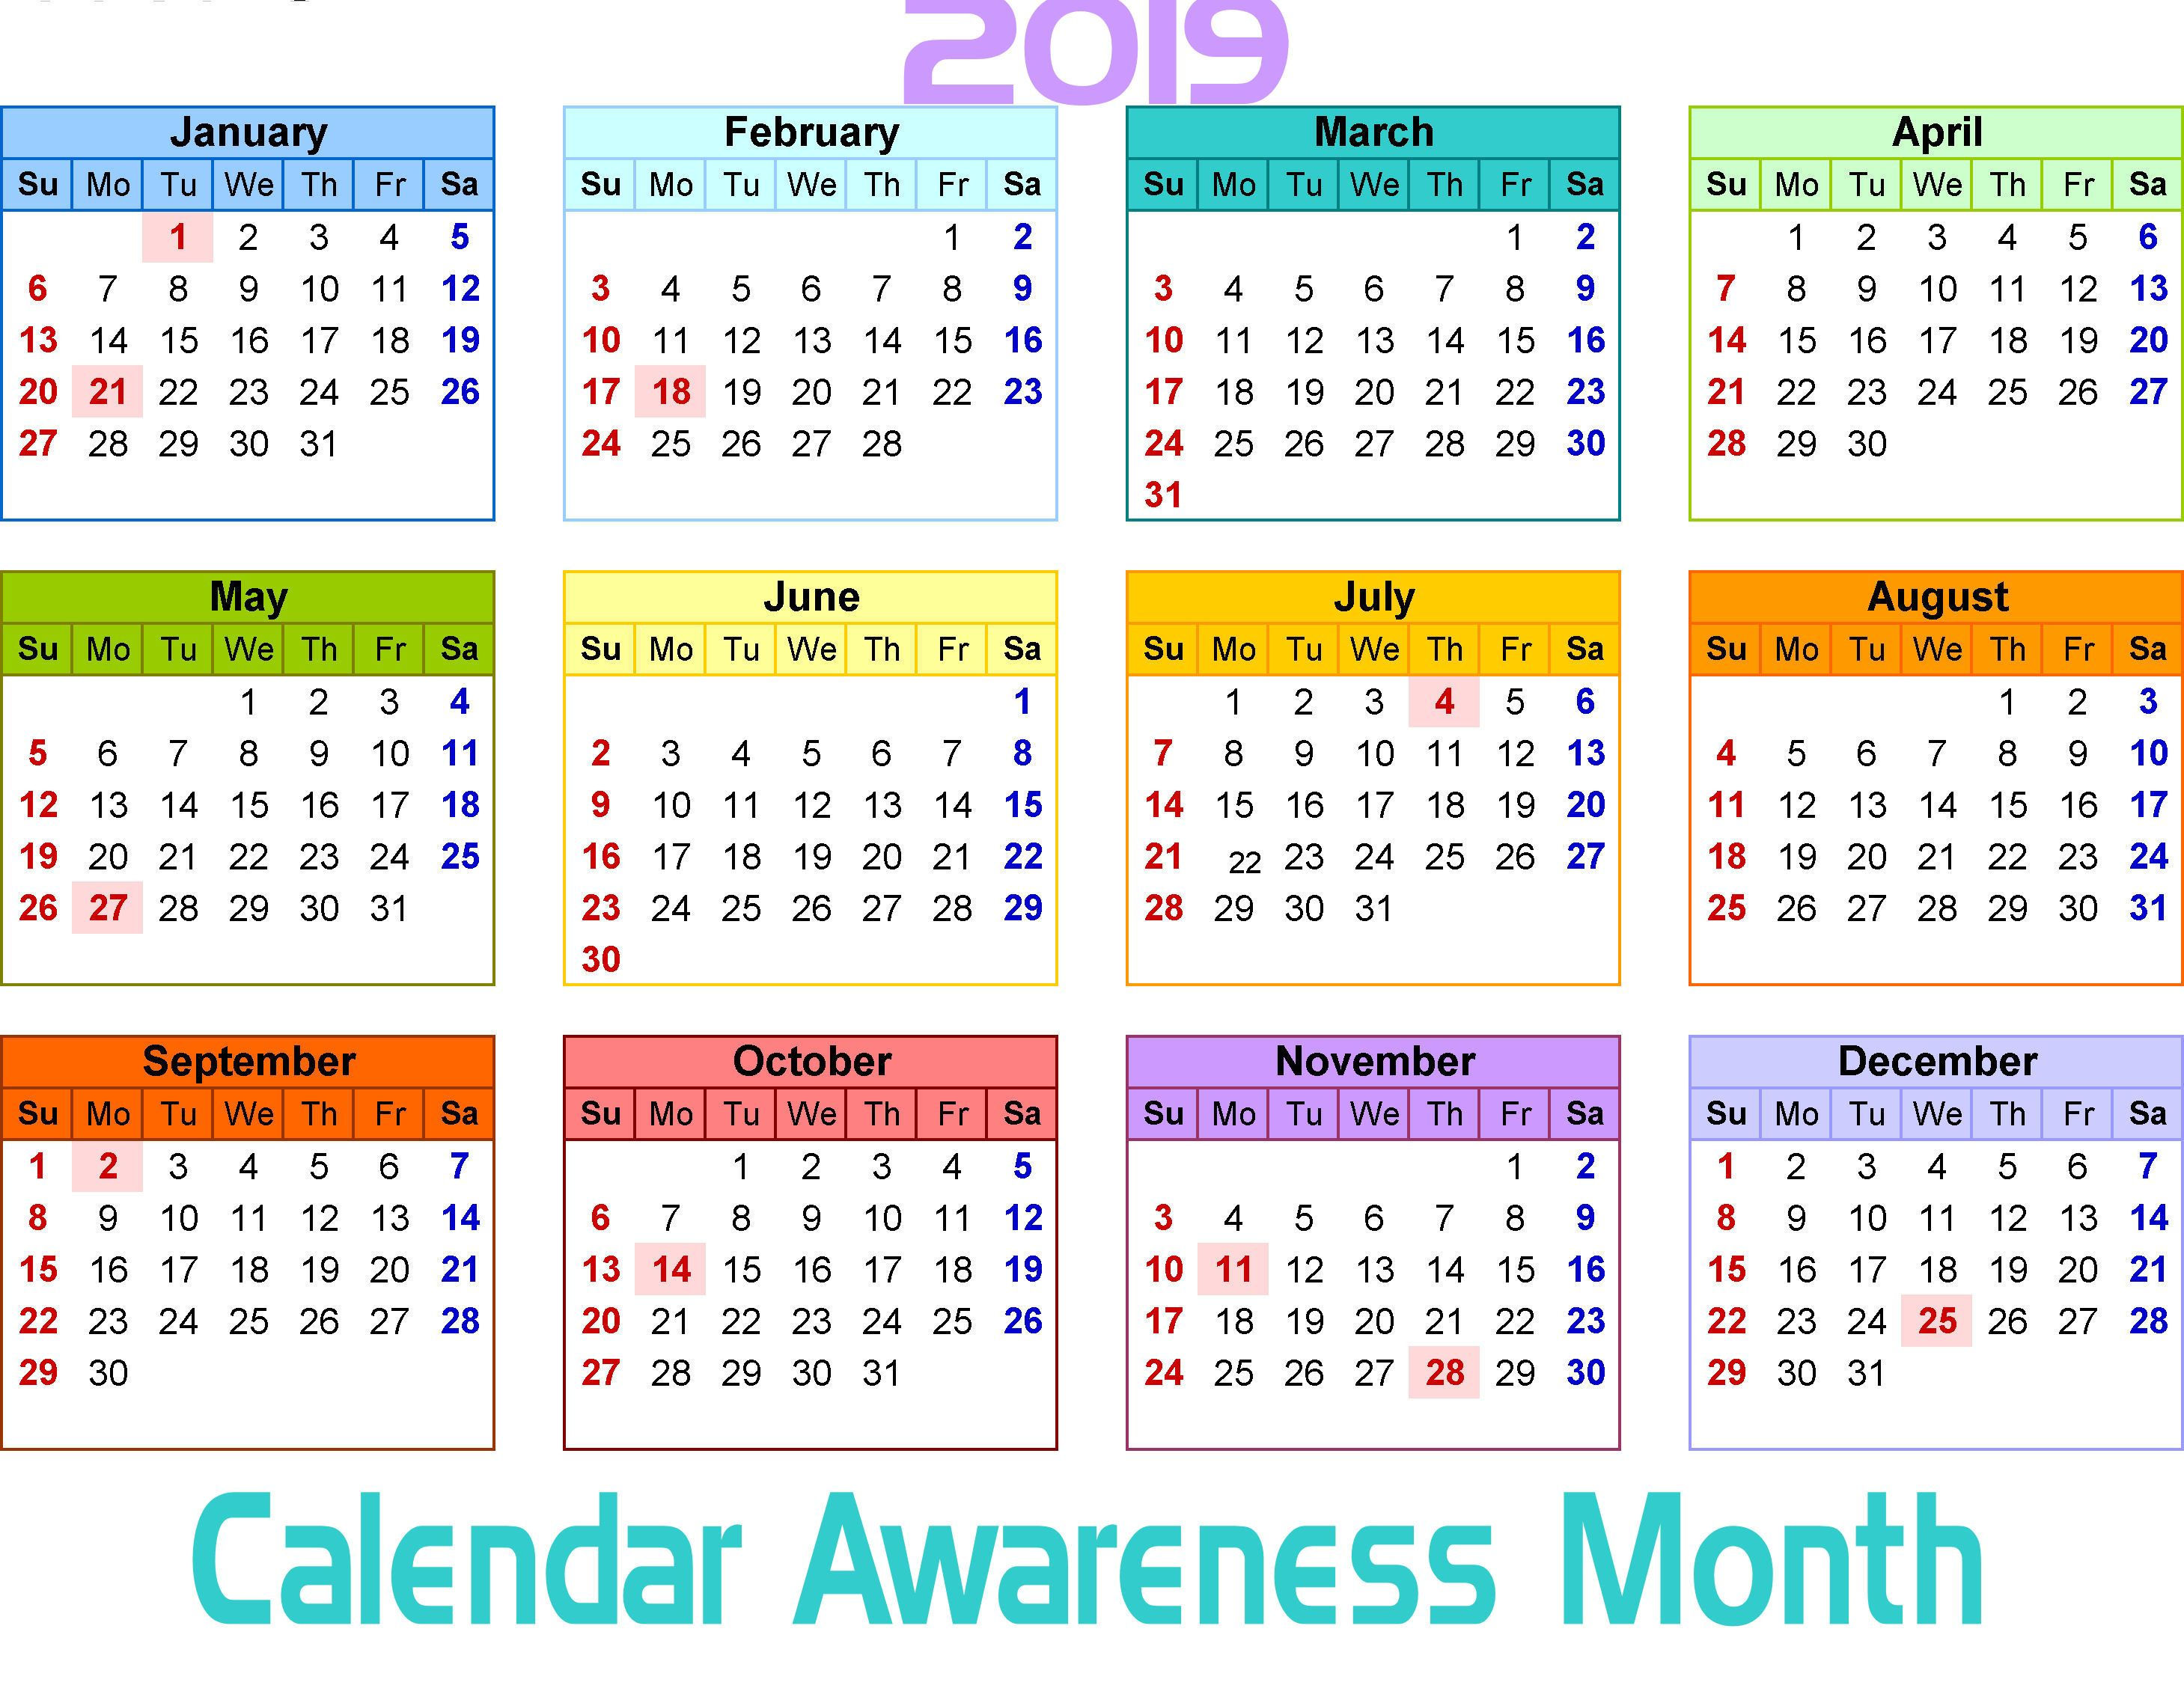 Monthly Awareness Calendar 2019 December is Calendar Awareness Month | Celebrate in 2019